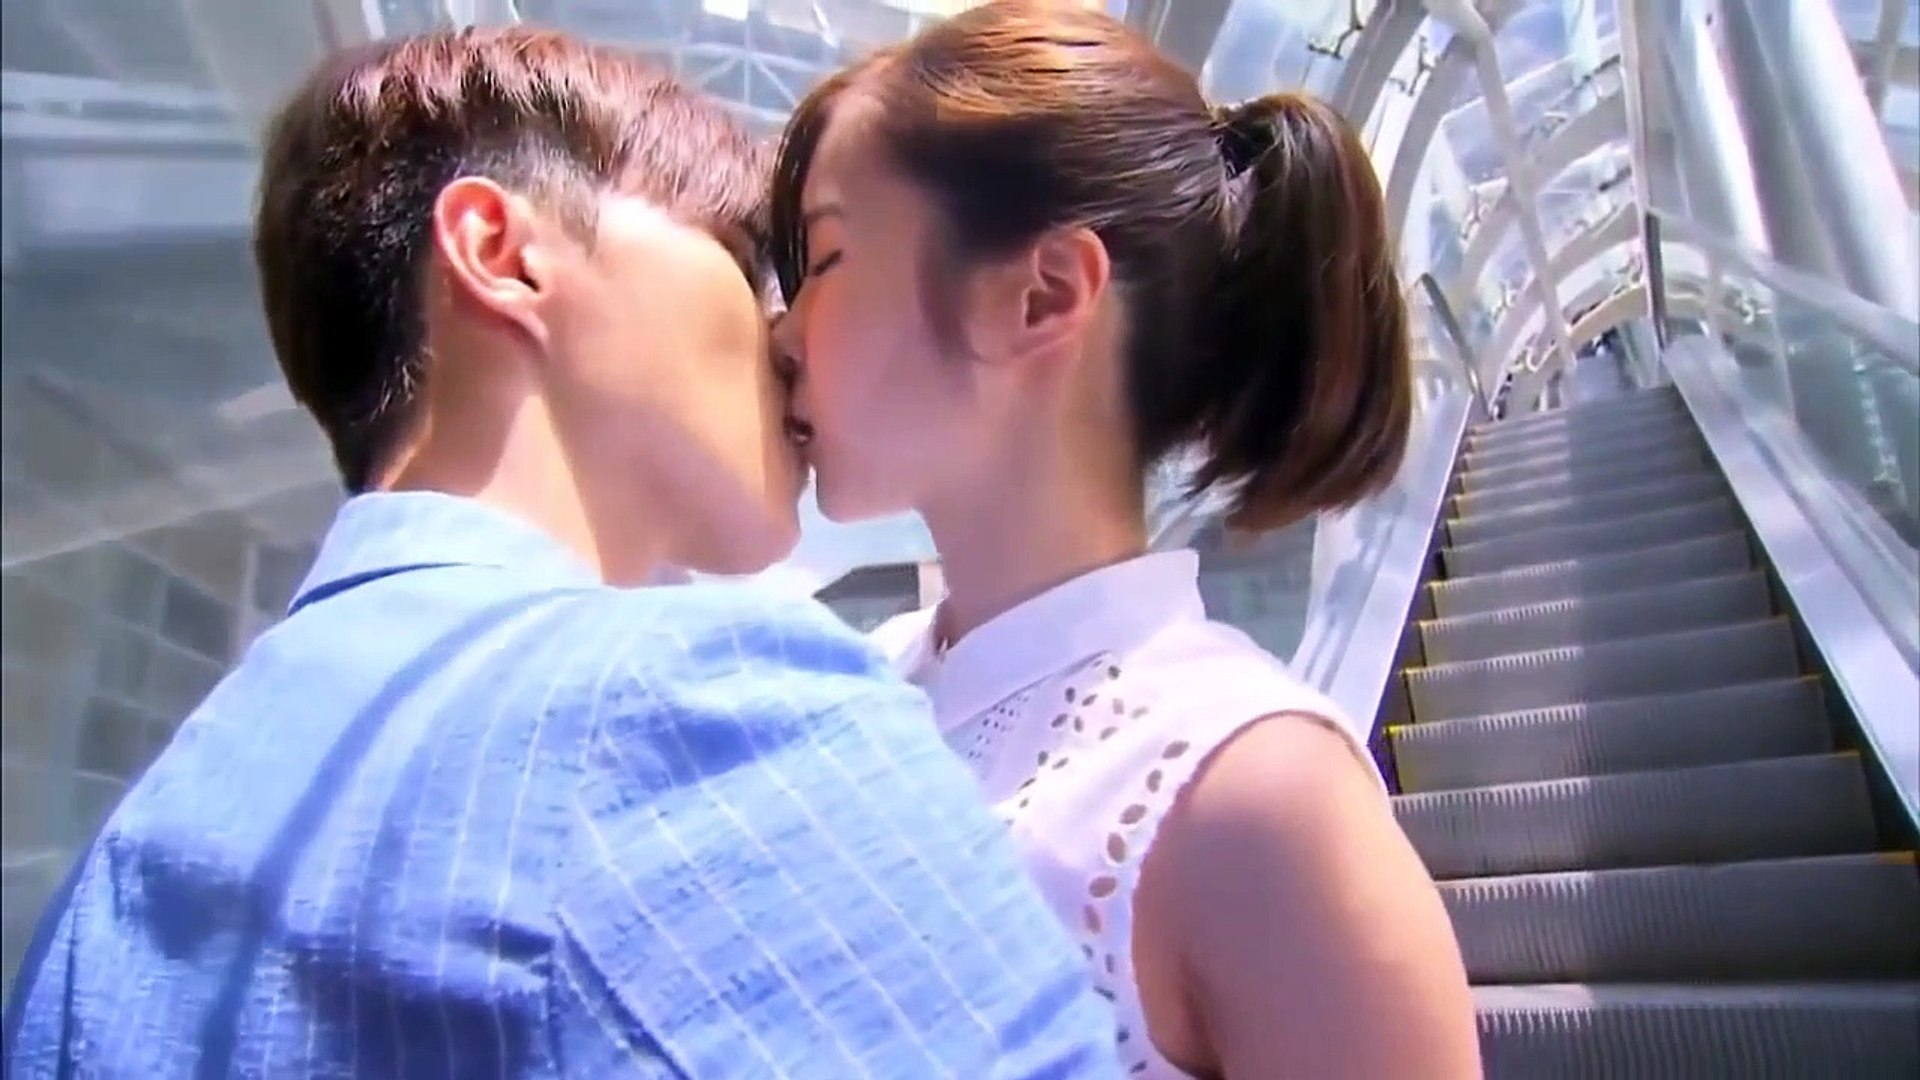 paling Top ~ Kissing scene from Korean Movies